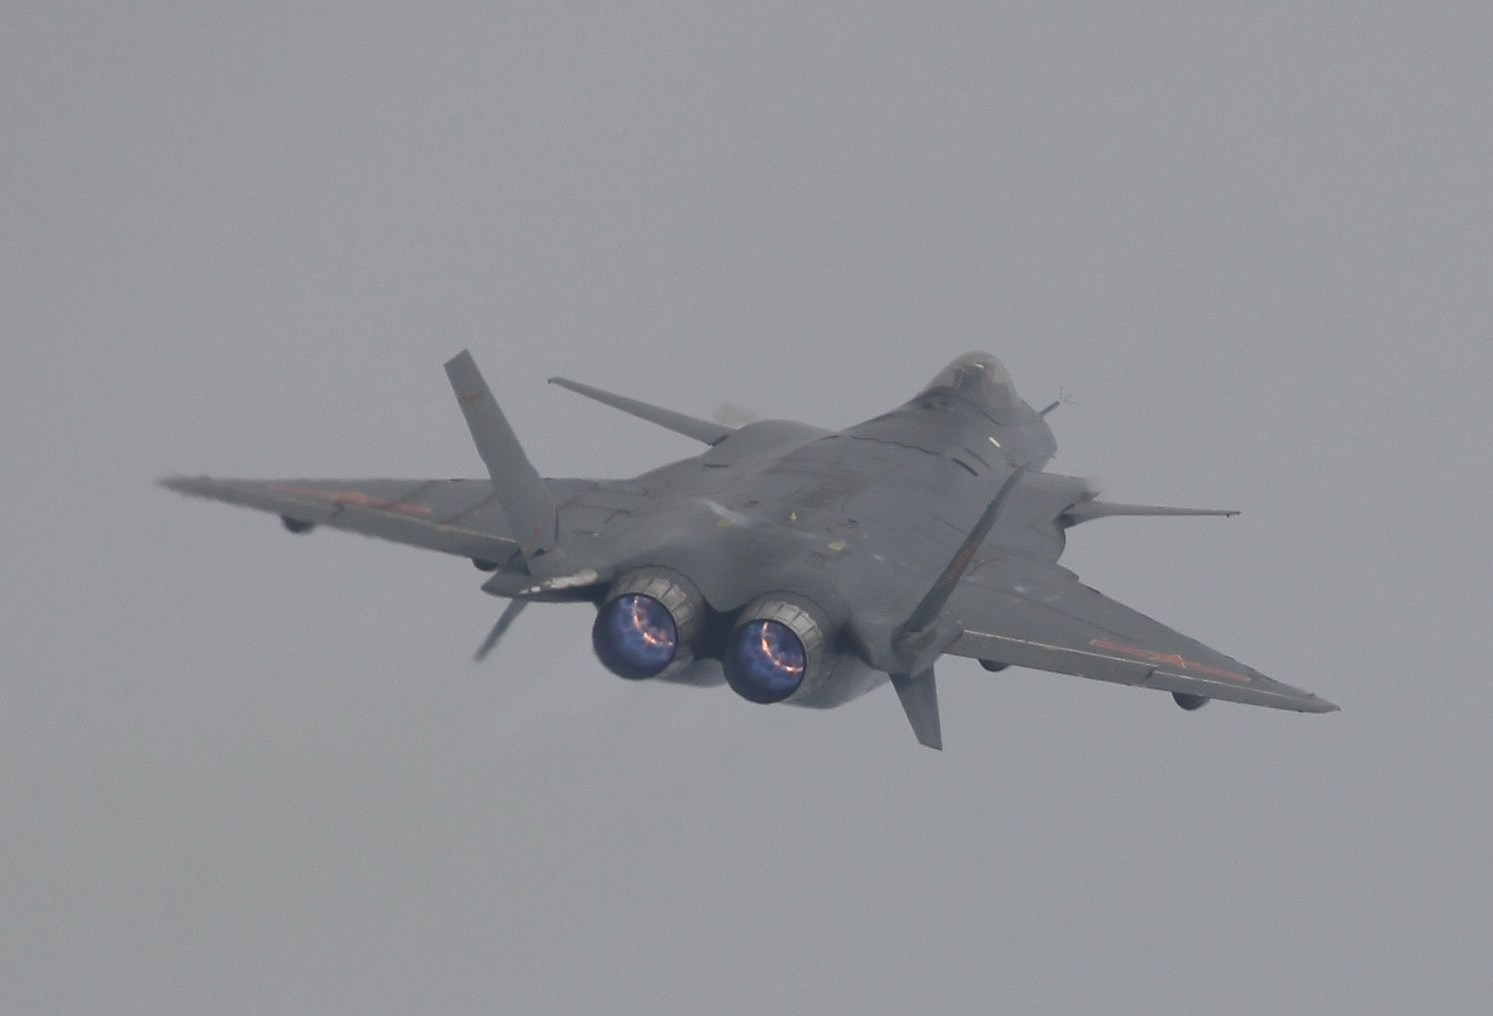 chine J-20+Mighty+Dragon++Chengdu+J-20+fifth+generation+stealth%252C+twin-engine+fighter+aircraft+prototype+People%2527s+Liberation+Army+Air+Force++OPERATIONAL+weapons+aam+bvr+missile+ls+pgm+gps+plaaf+%25282%2529